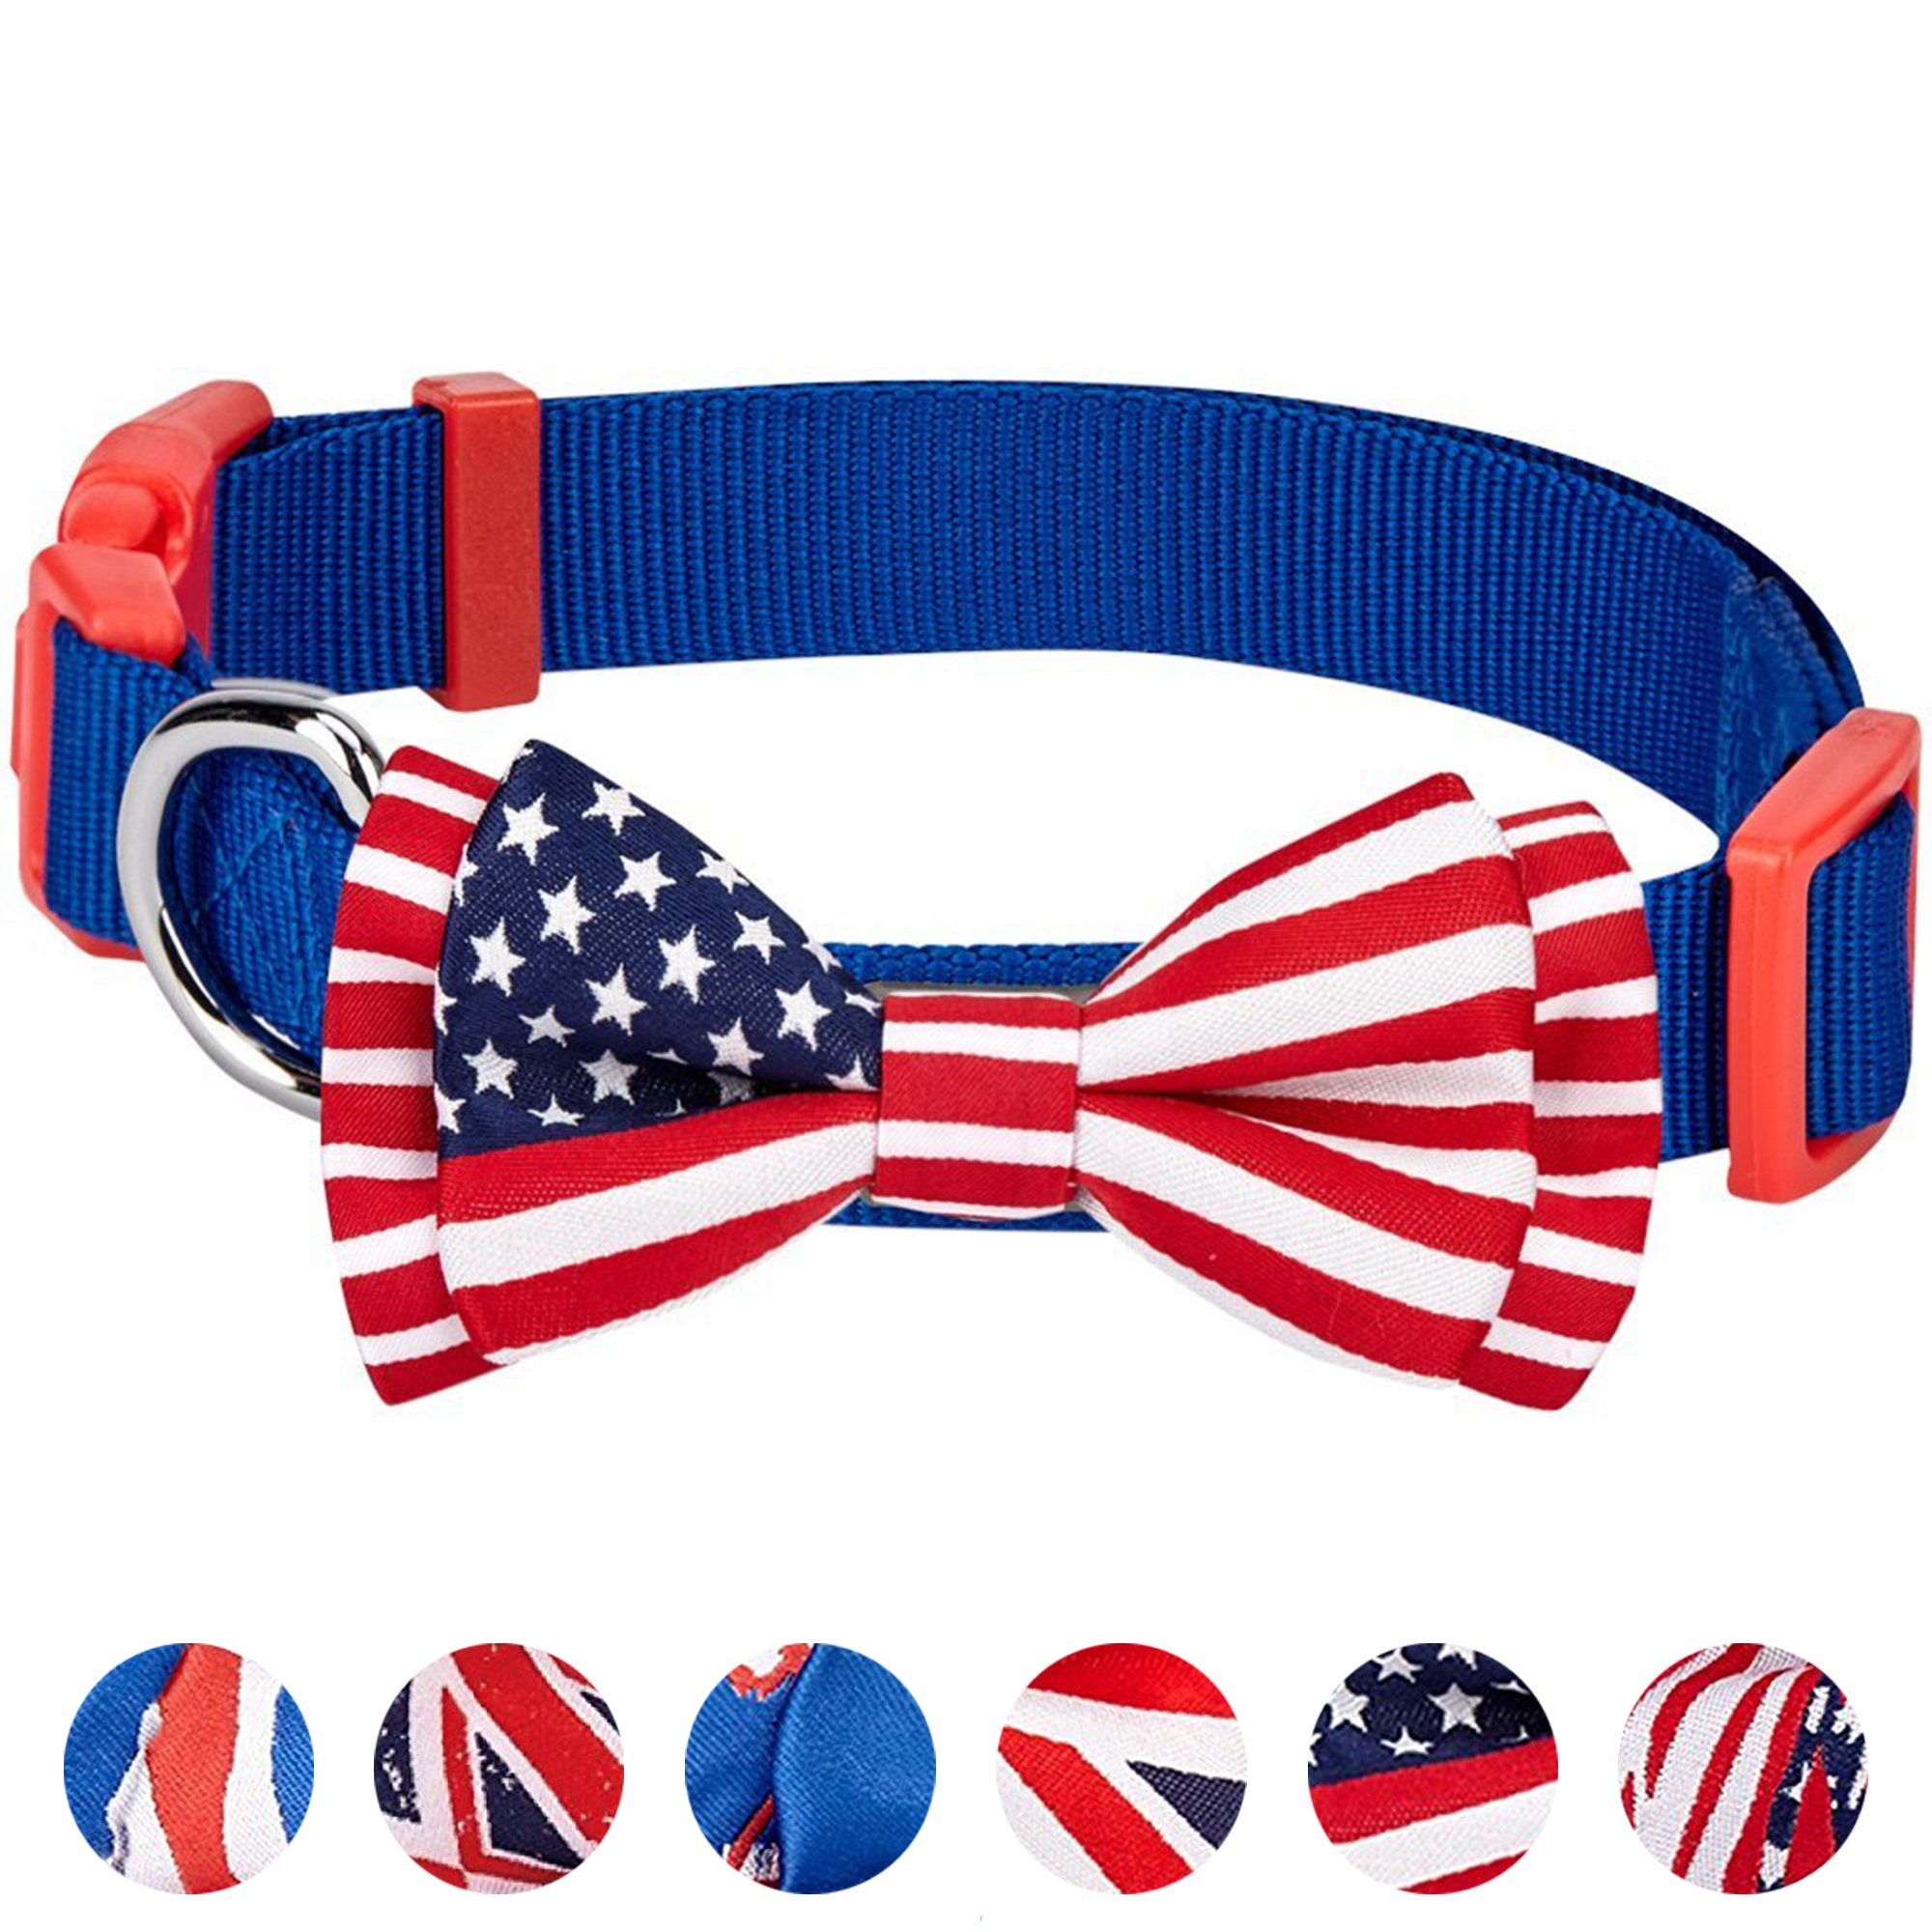 Blueberry Pet 6 Designs Pack of 1 National Pride Handmade USA American Flag w/Jacquard Weave Fabric Detachable Bow Tie Dog Collar in Blue, Medium, Neck 14.5''-20'', Adjustable Collars for Dogs